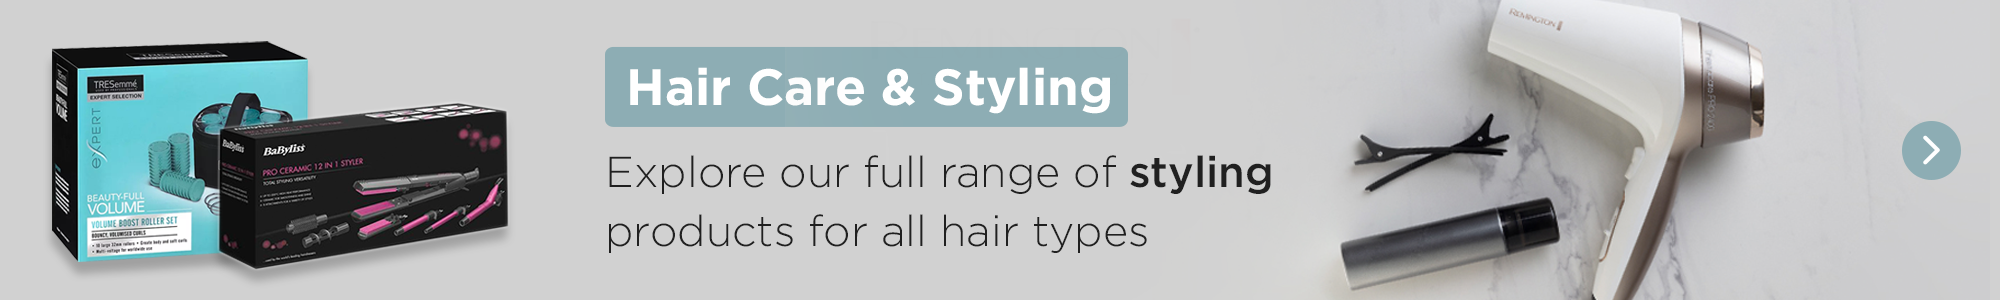 Explore our full range of styling products for all hair types